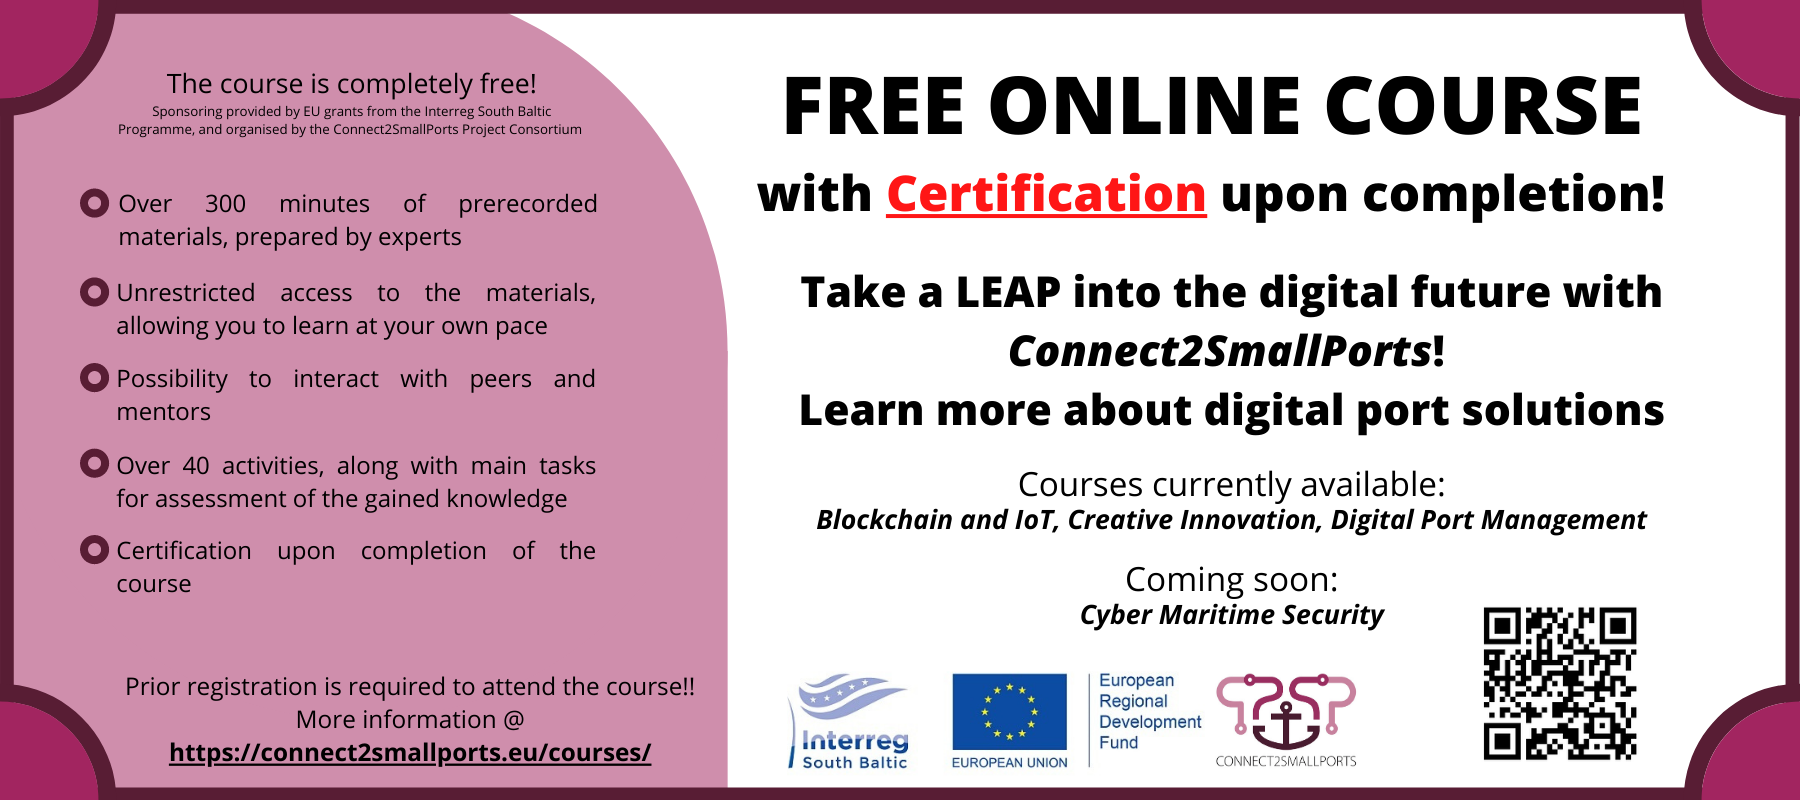 Free online course with certification